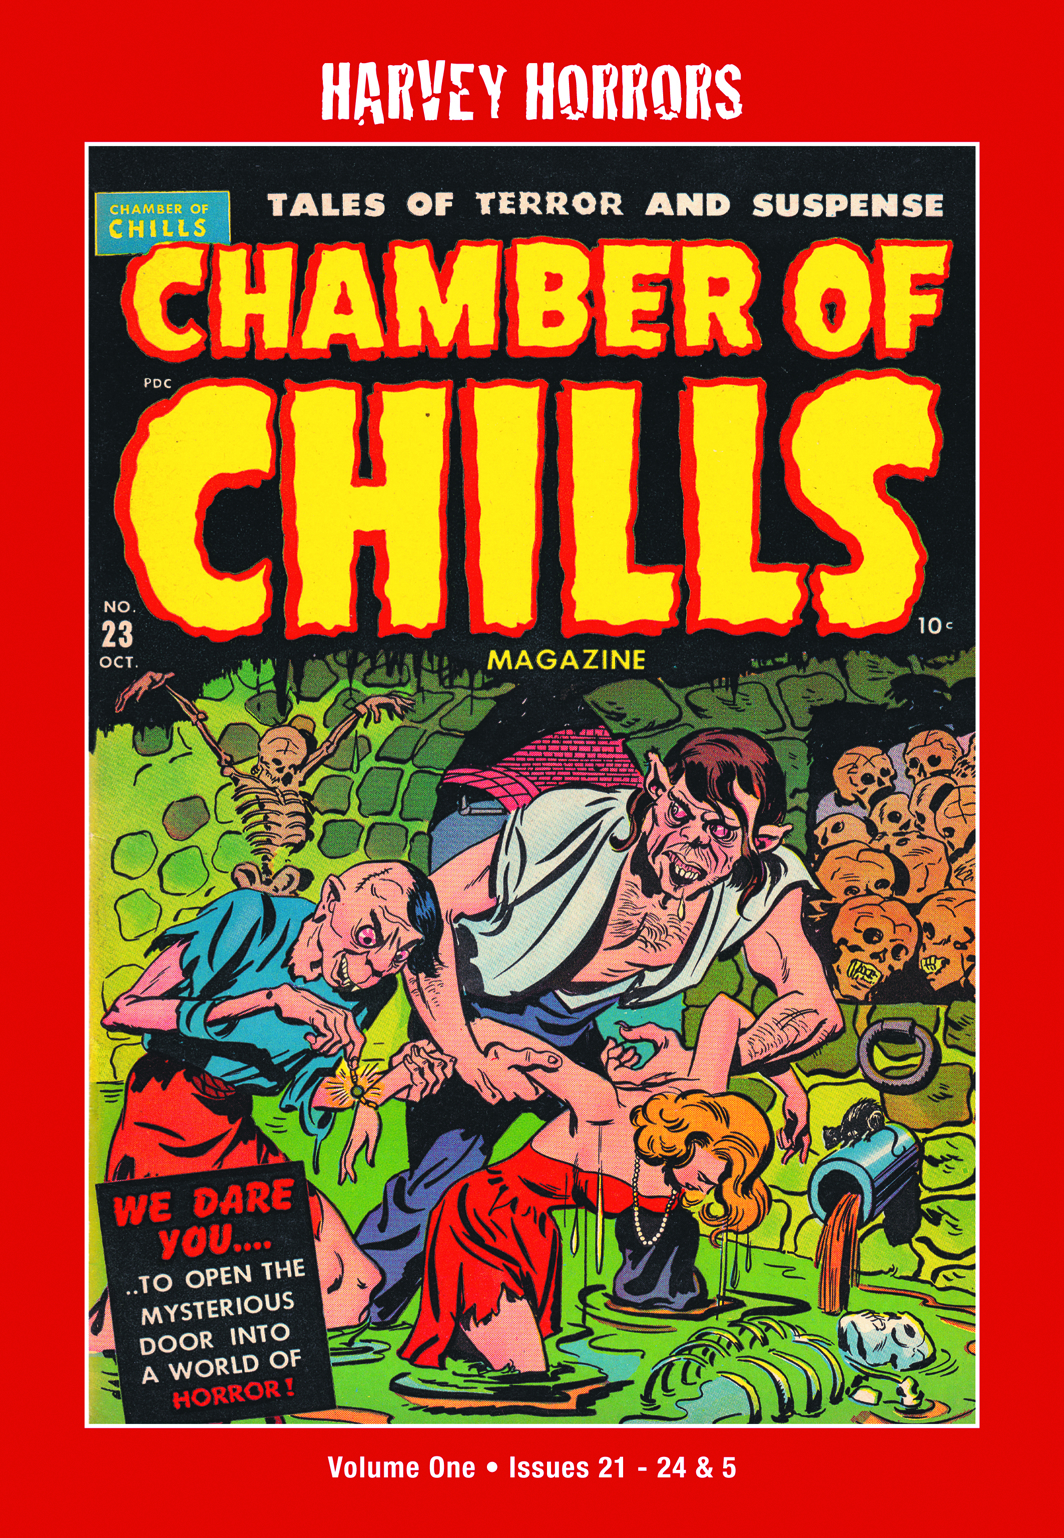 HARVEY HORRORS CHAMBER OF CHILLS SOFTIE TP VOL 01